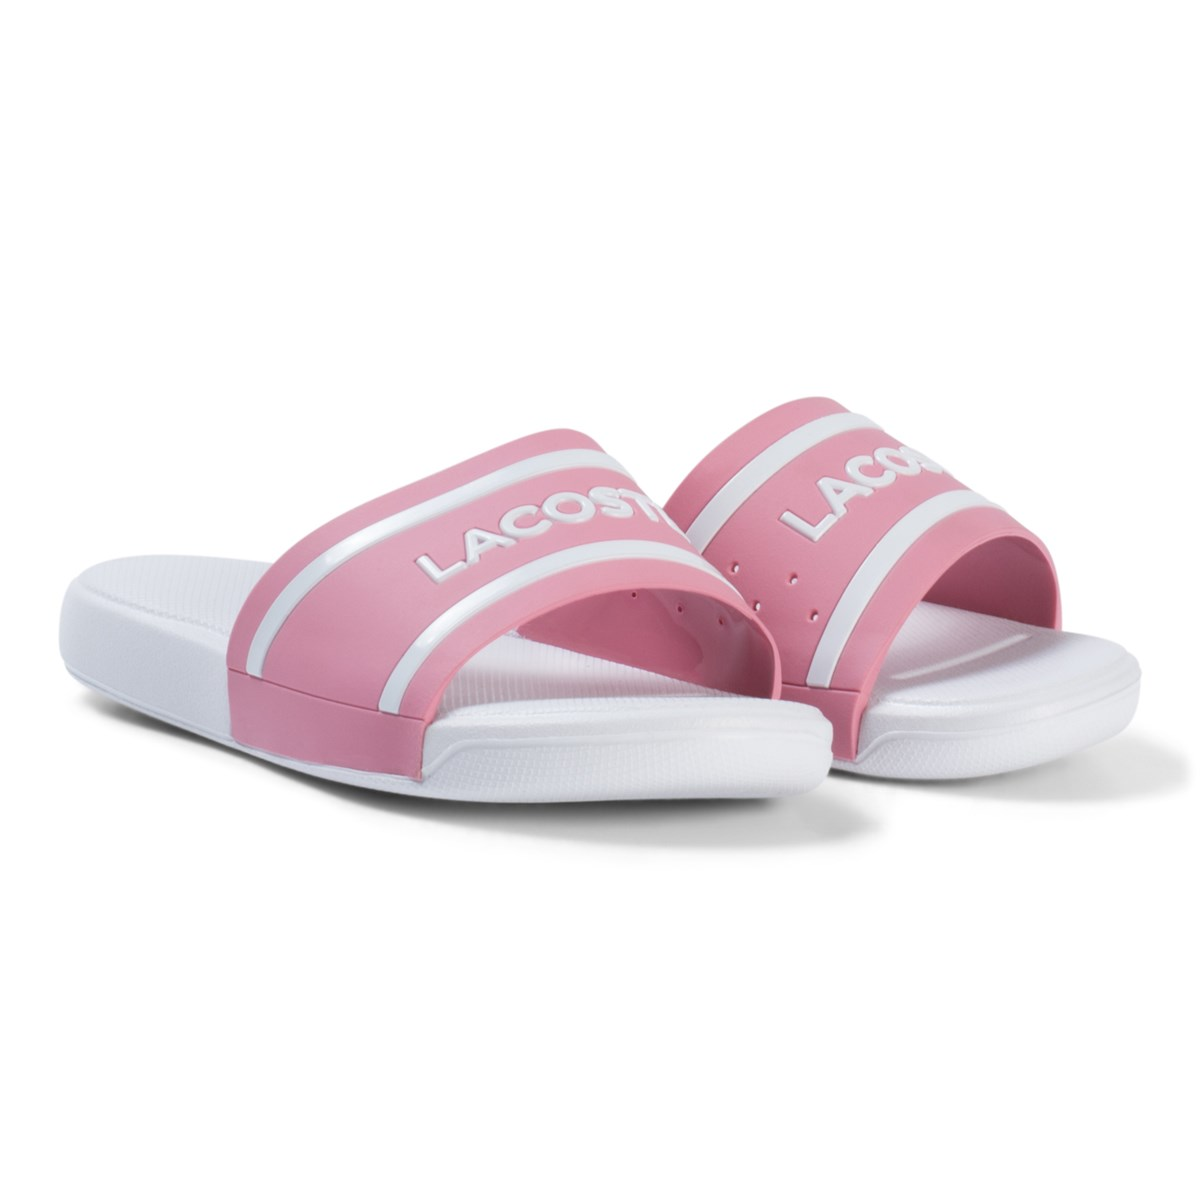 Pink and White Branded Kids Sliders